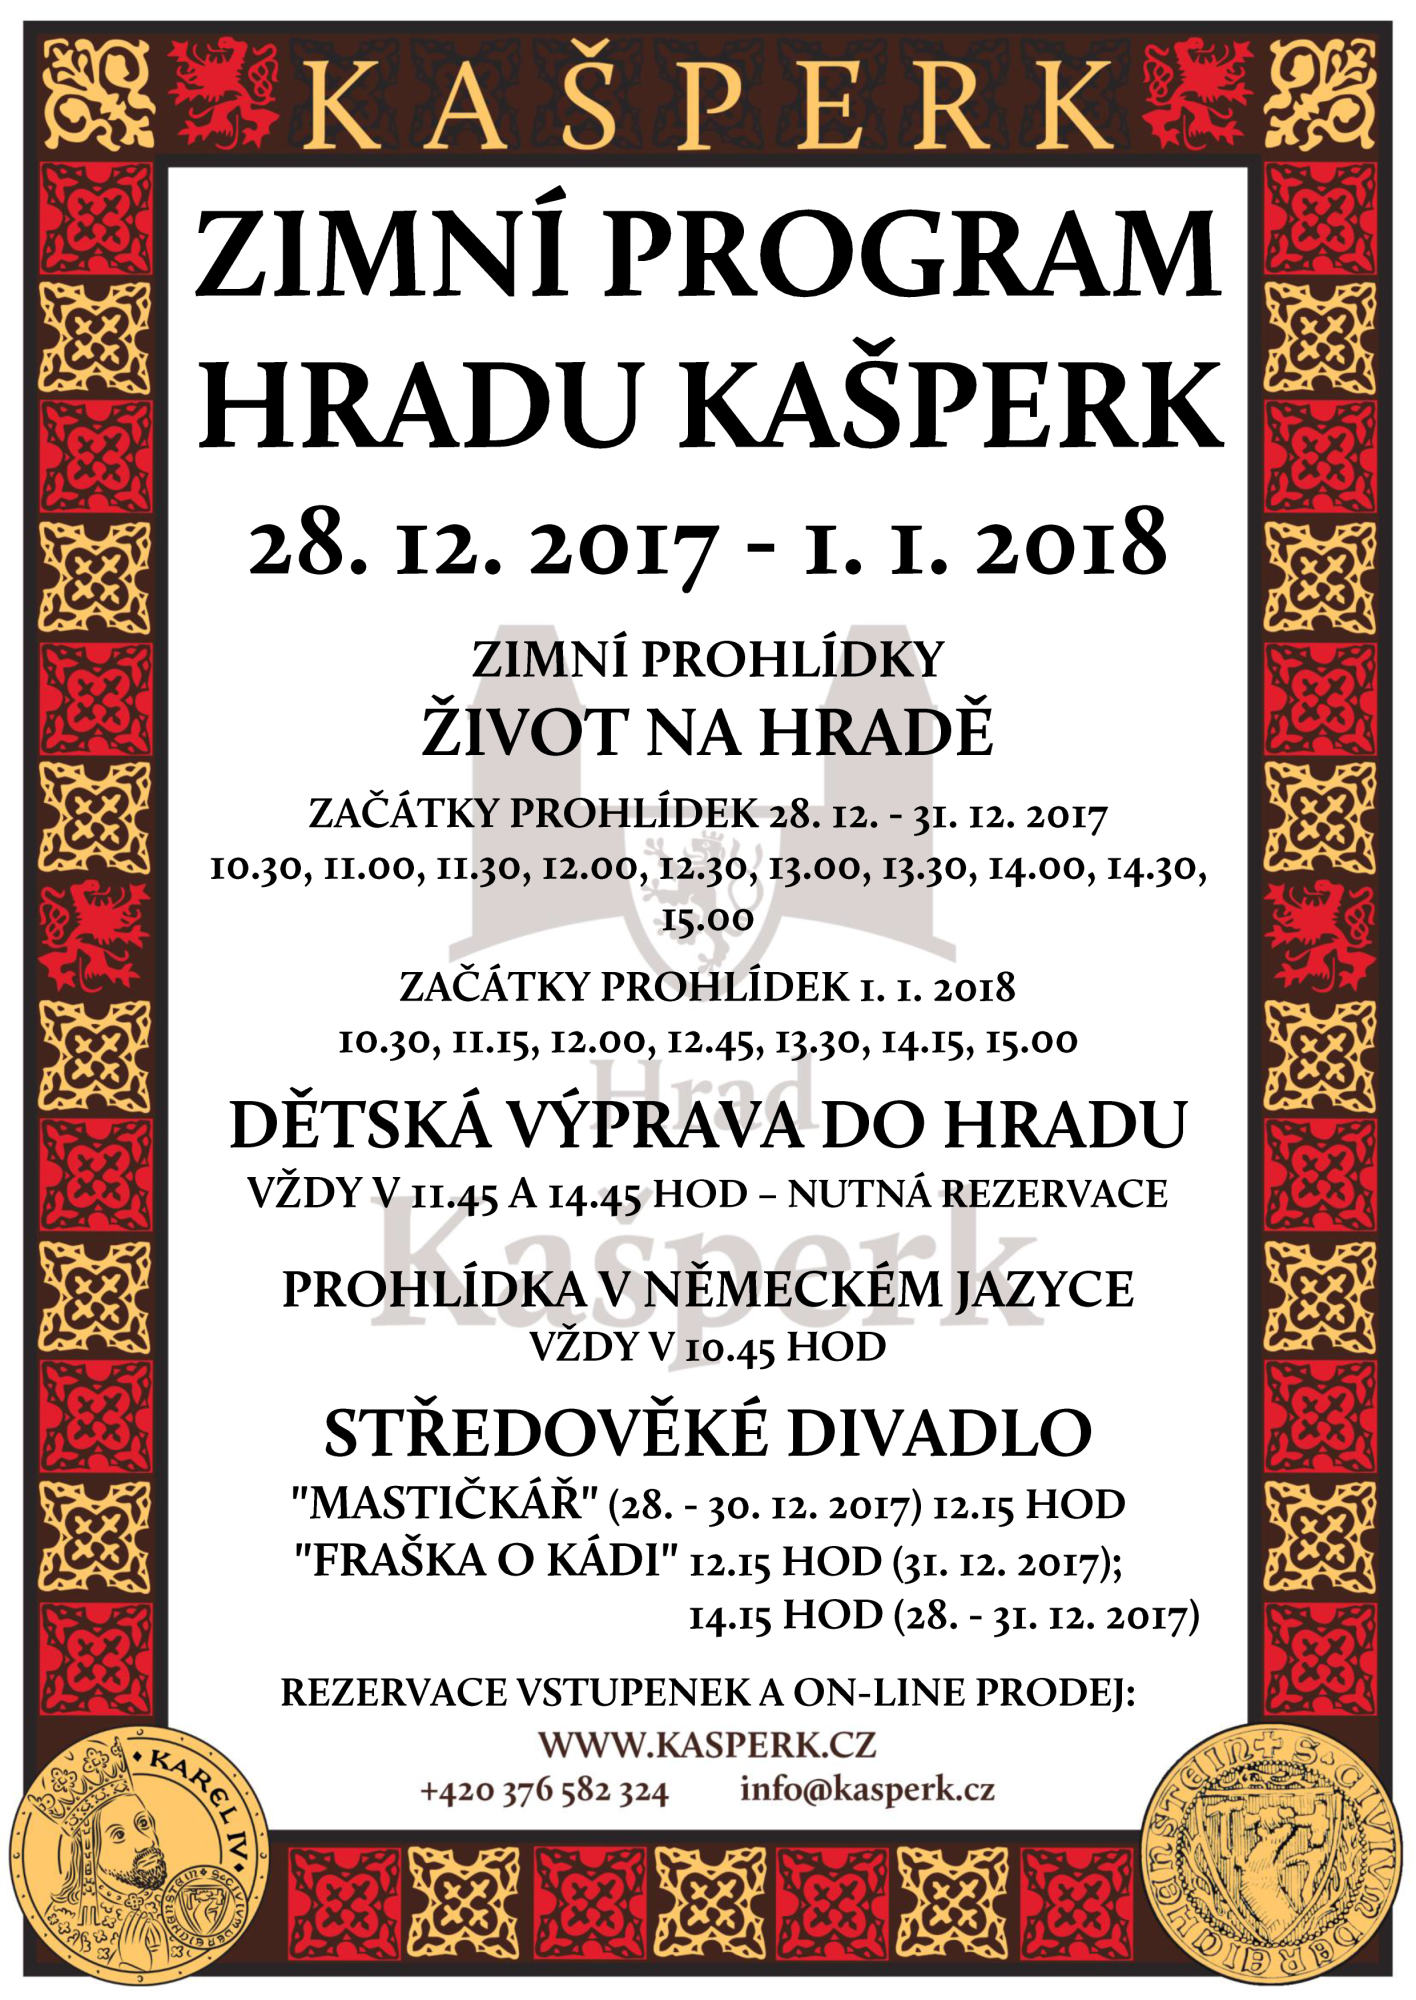 program podrobny